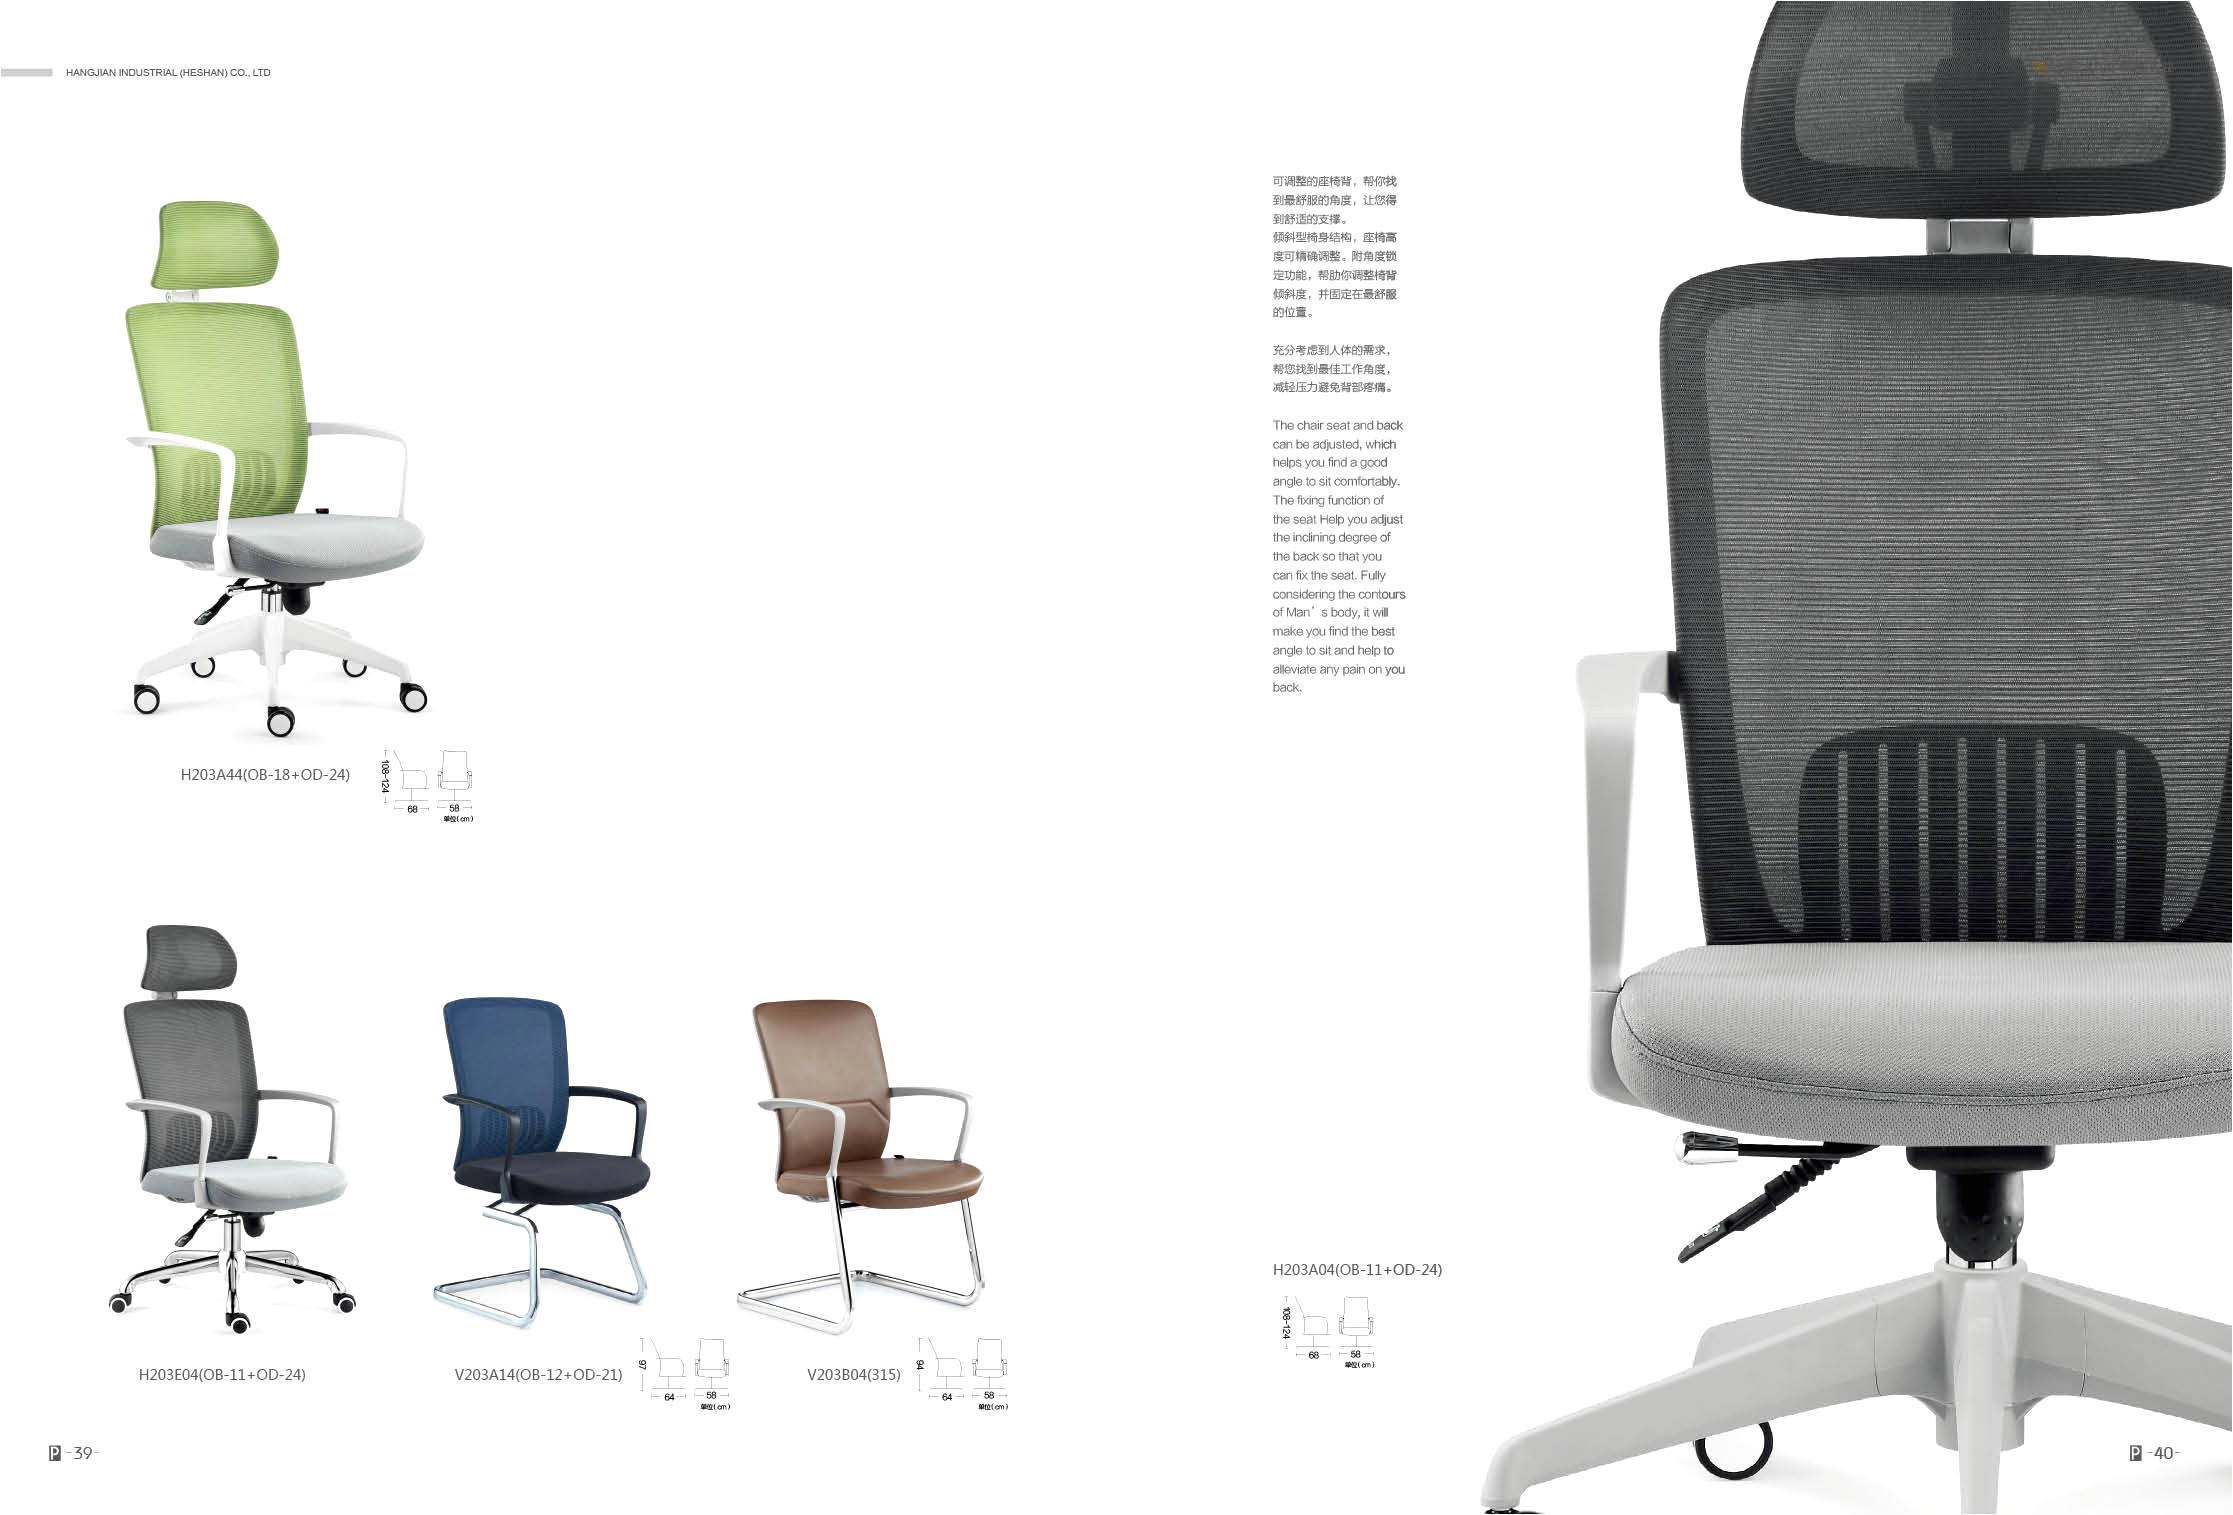 Wobble Chair for Posture Proper Desk Posture Awesome Desk Chair Posture Greatest 48 Best Good